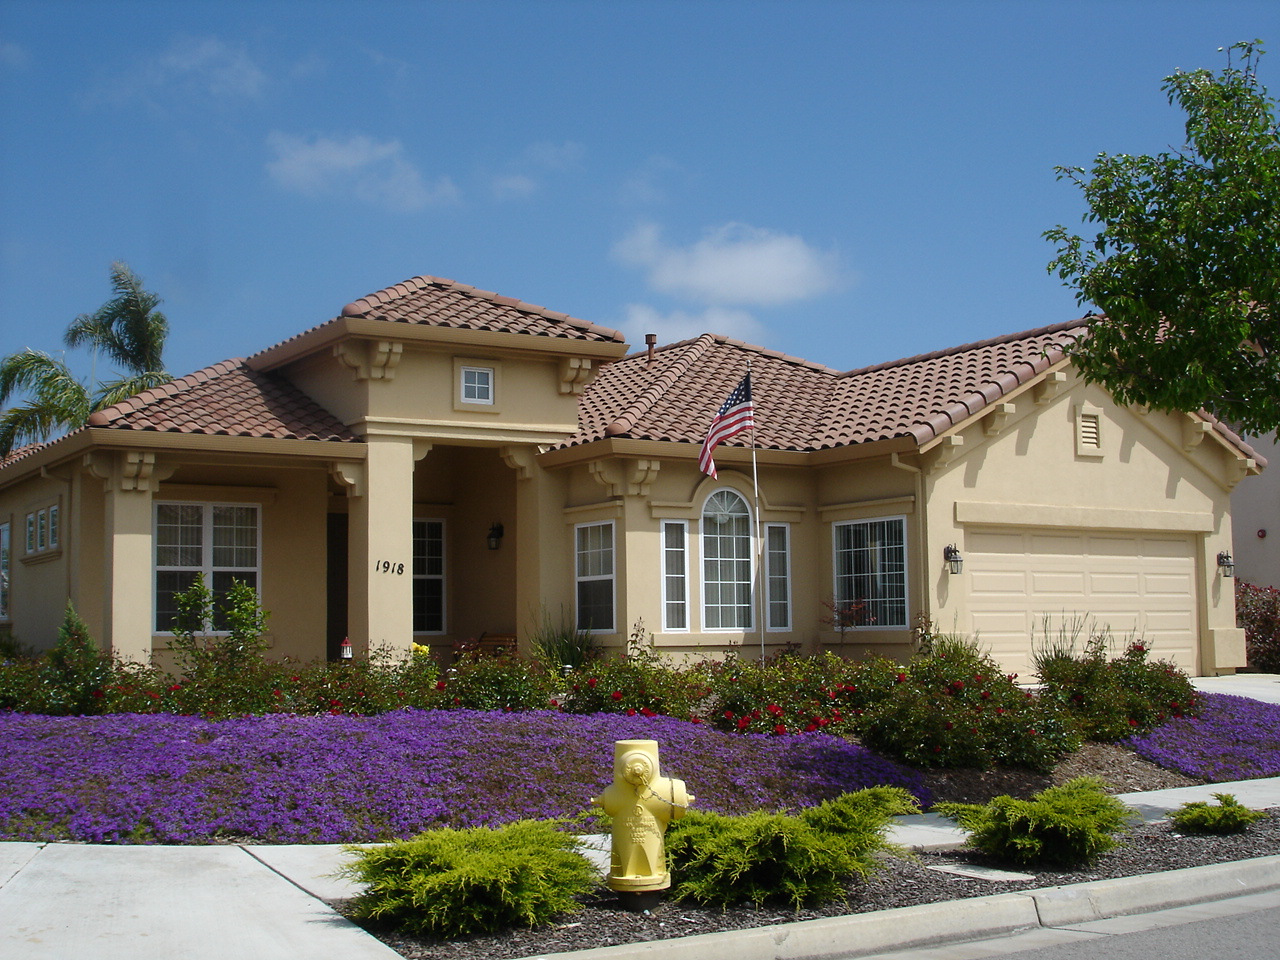 File:Ranch style home in Salinas, California.JPG - Wikimedia Commons